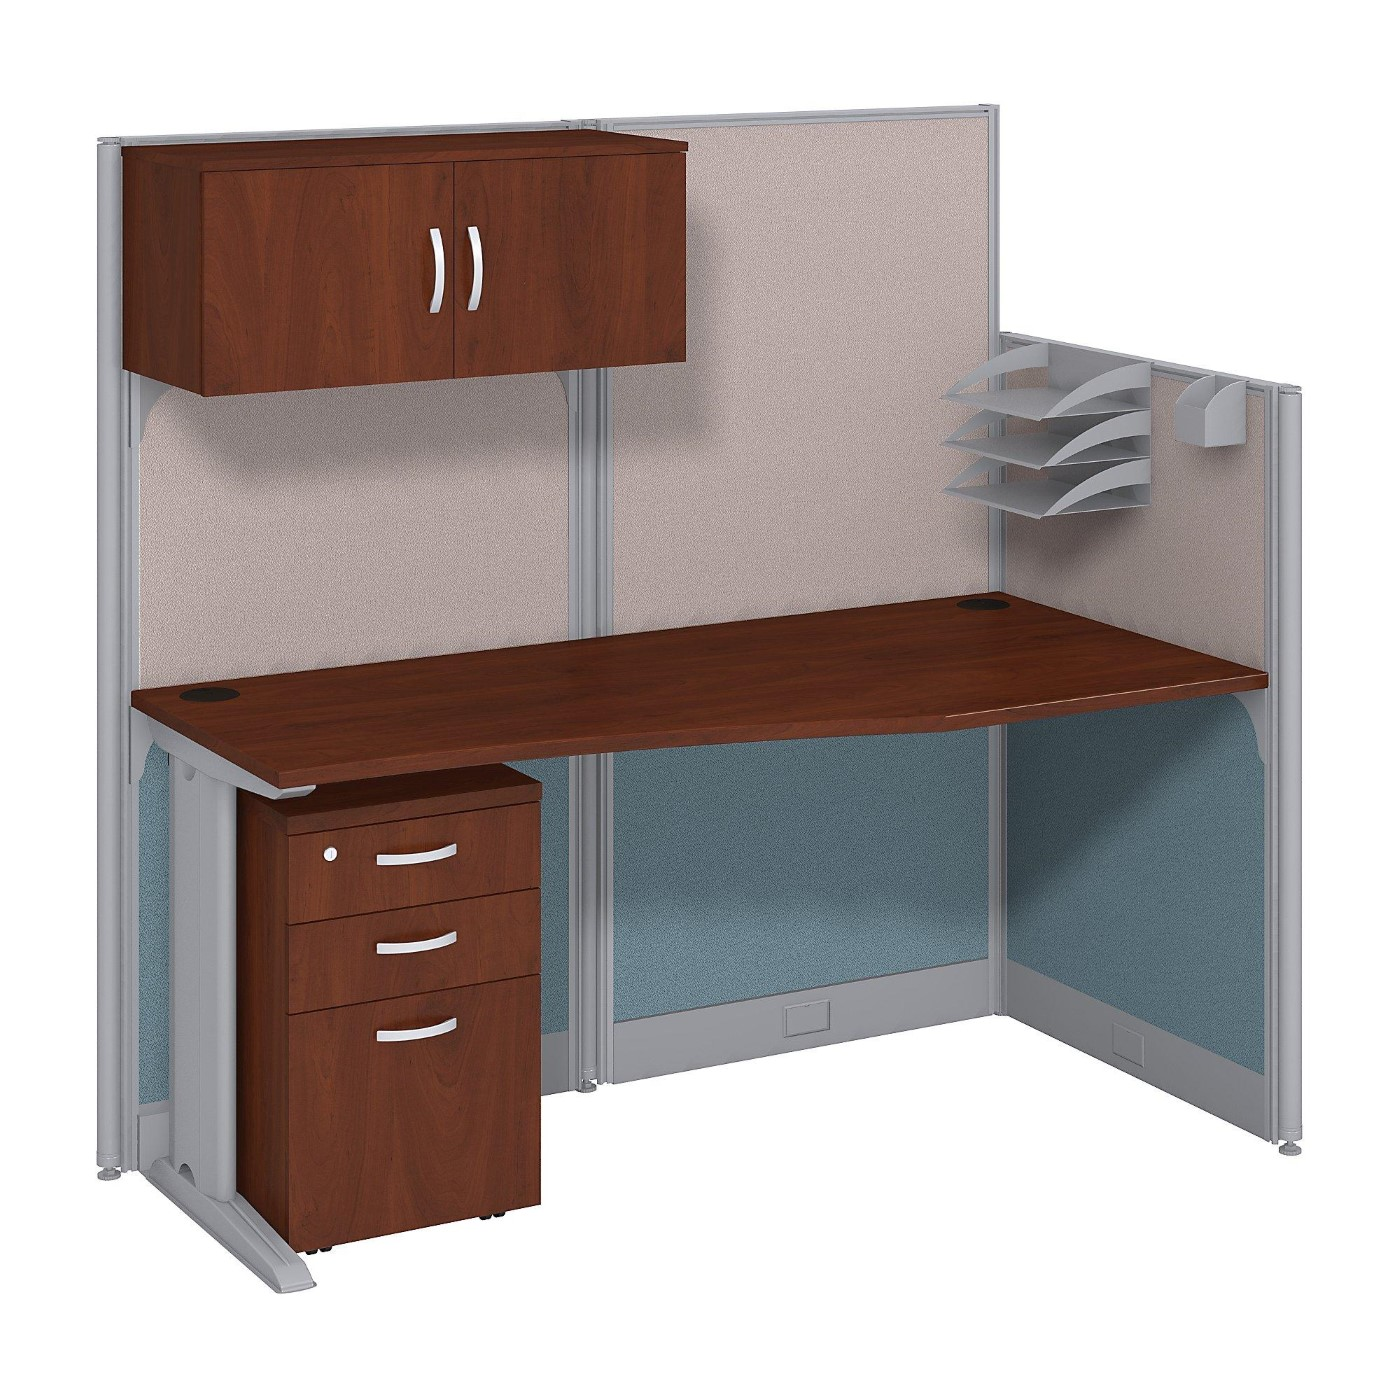 BUSH BUSINESS FURNITURE OFFICE IN AN HOUR 65W X 33D CUBICLE WORKSTATION WITH STORAGE. FREE SHIPPING  VIDEO BELOW.  SALE DEDUCT 10% MORE ENTER '10percent' IN COUPON CODE BOX WHILE CHECKING OUT. ENDS 5-31-20.